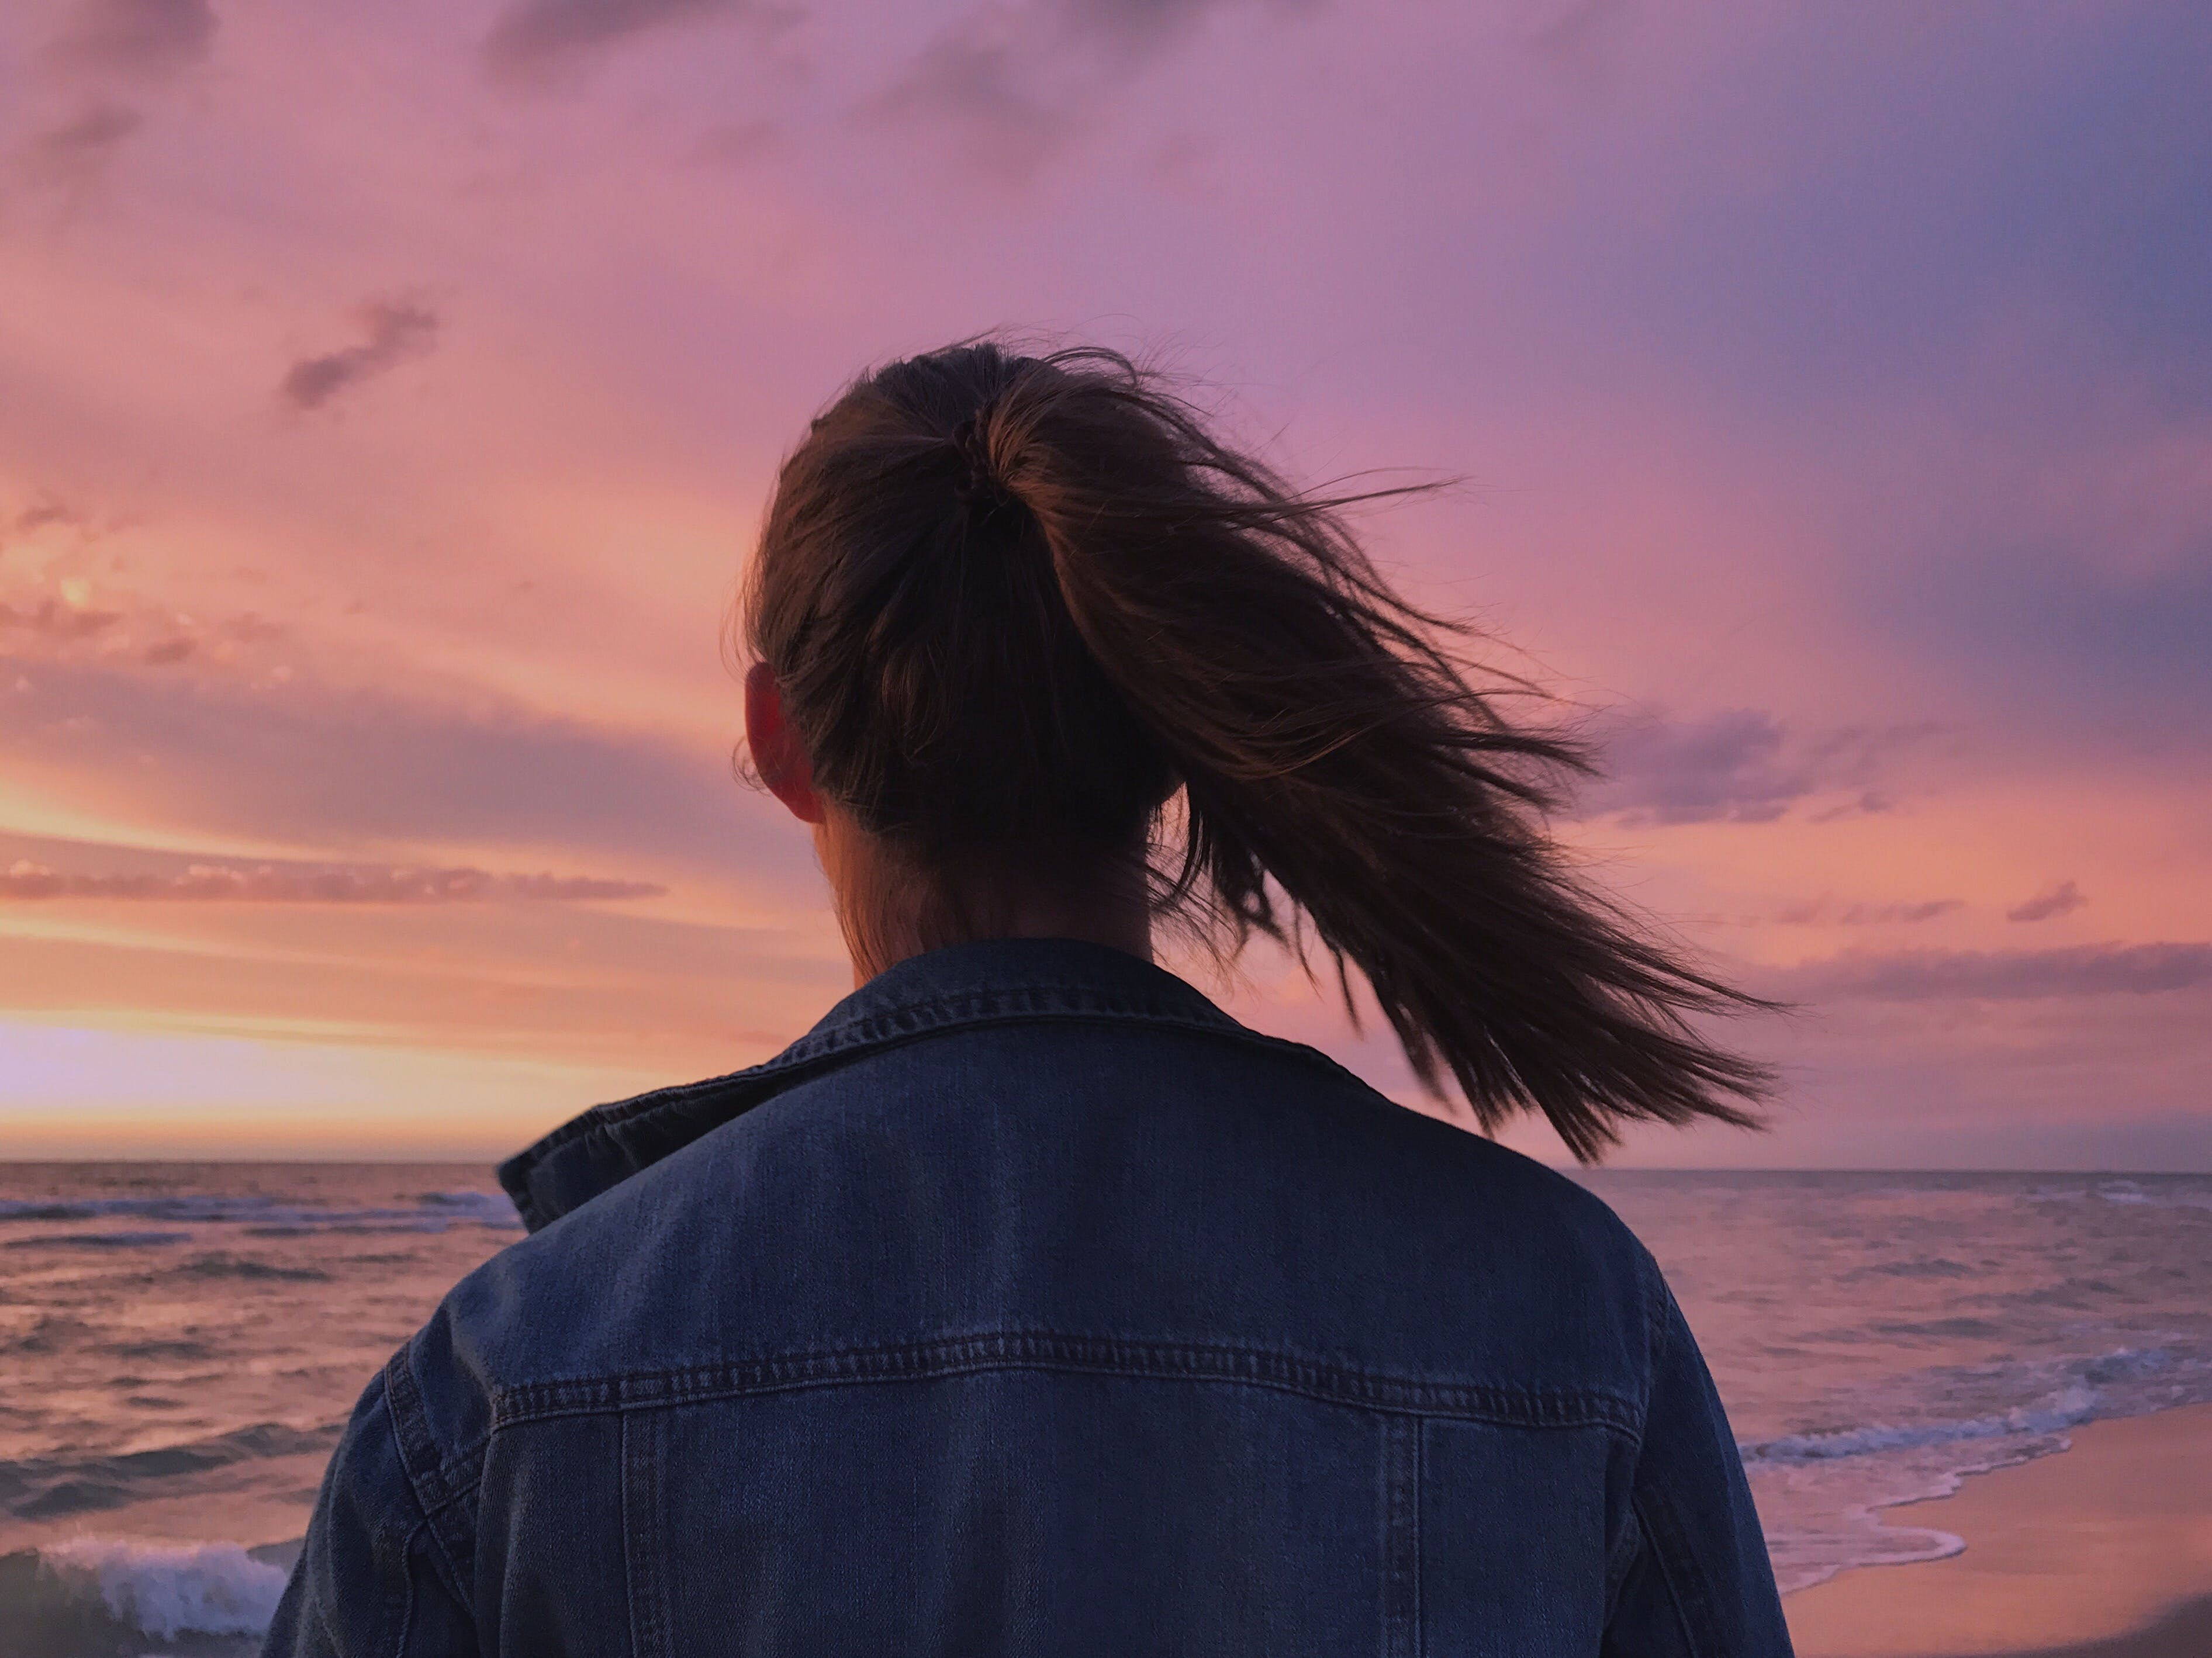 Woman Wearing Blue Denim Jacket Looking At The Beach